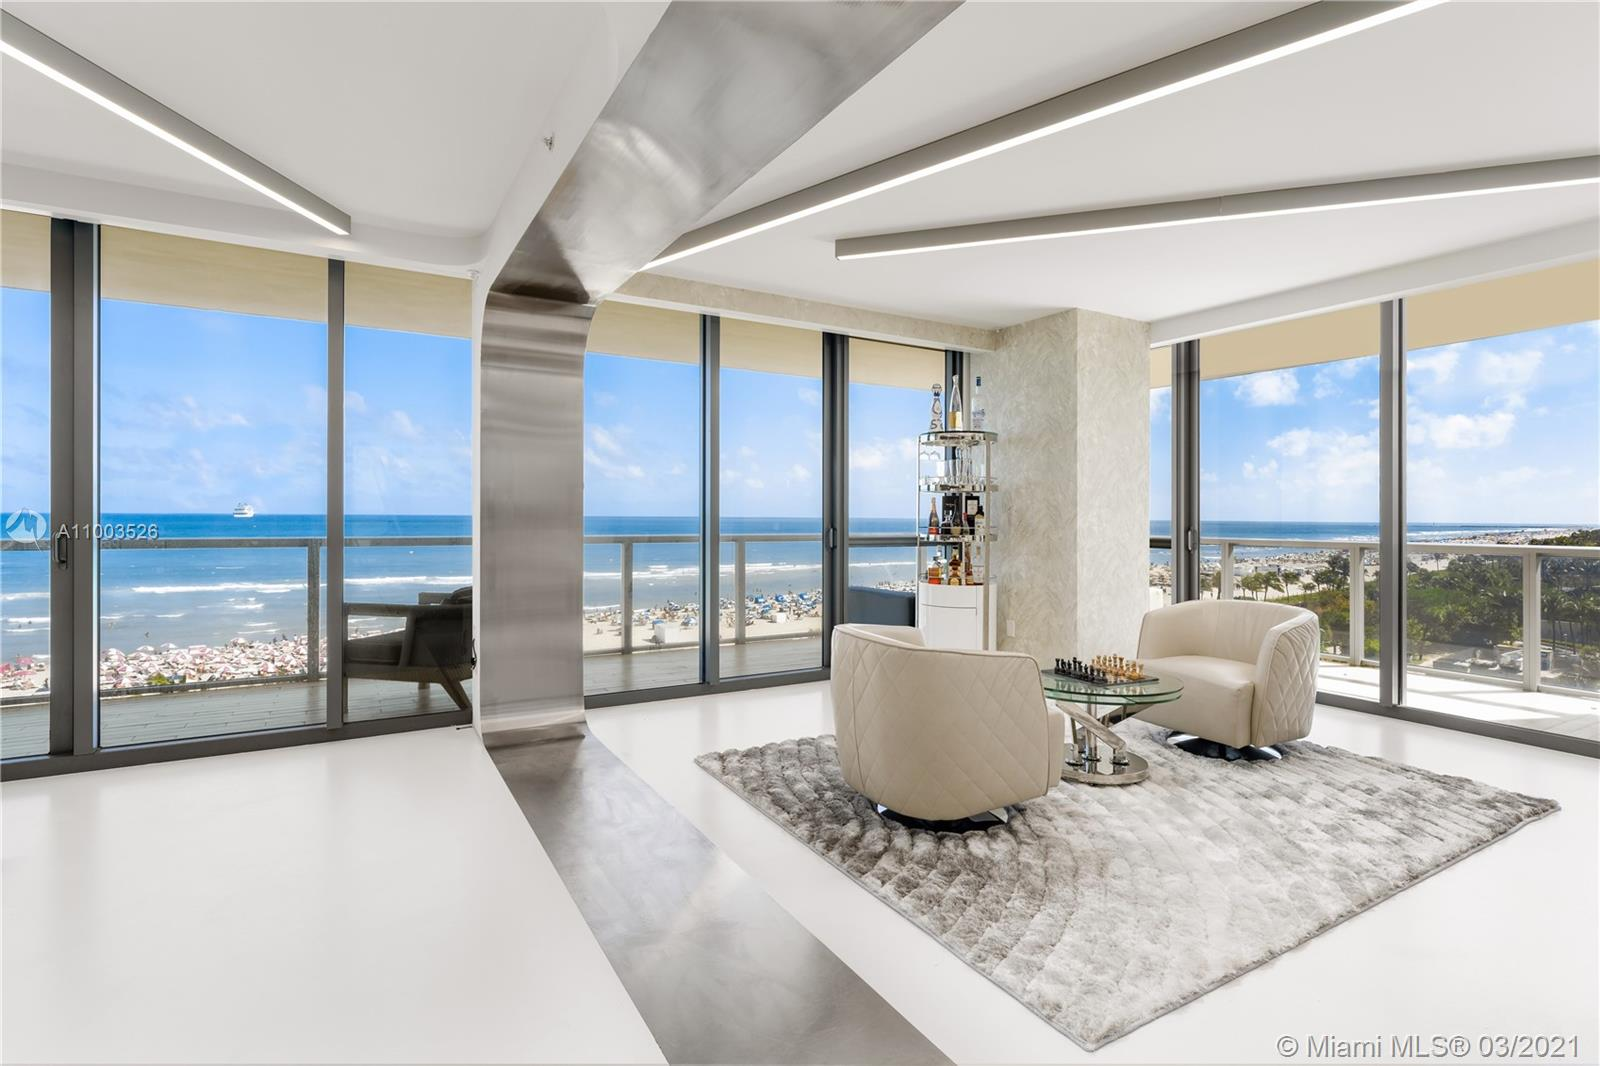 W South Beach #726/728/730 - 2201 Collins Ave #726/728/730, Miami Beach, FL 33139